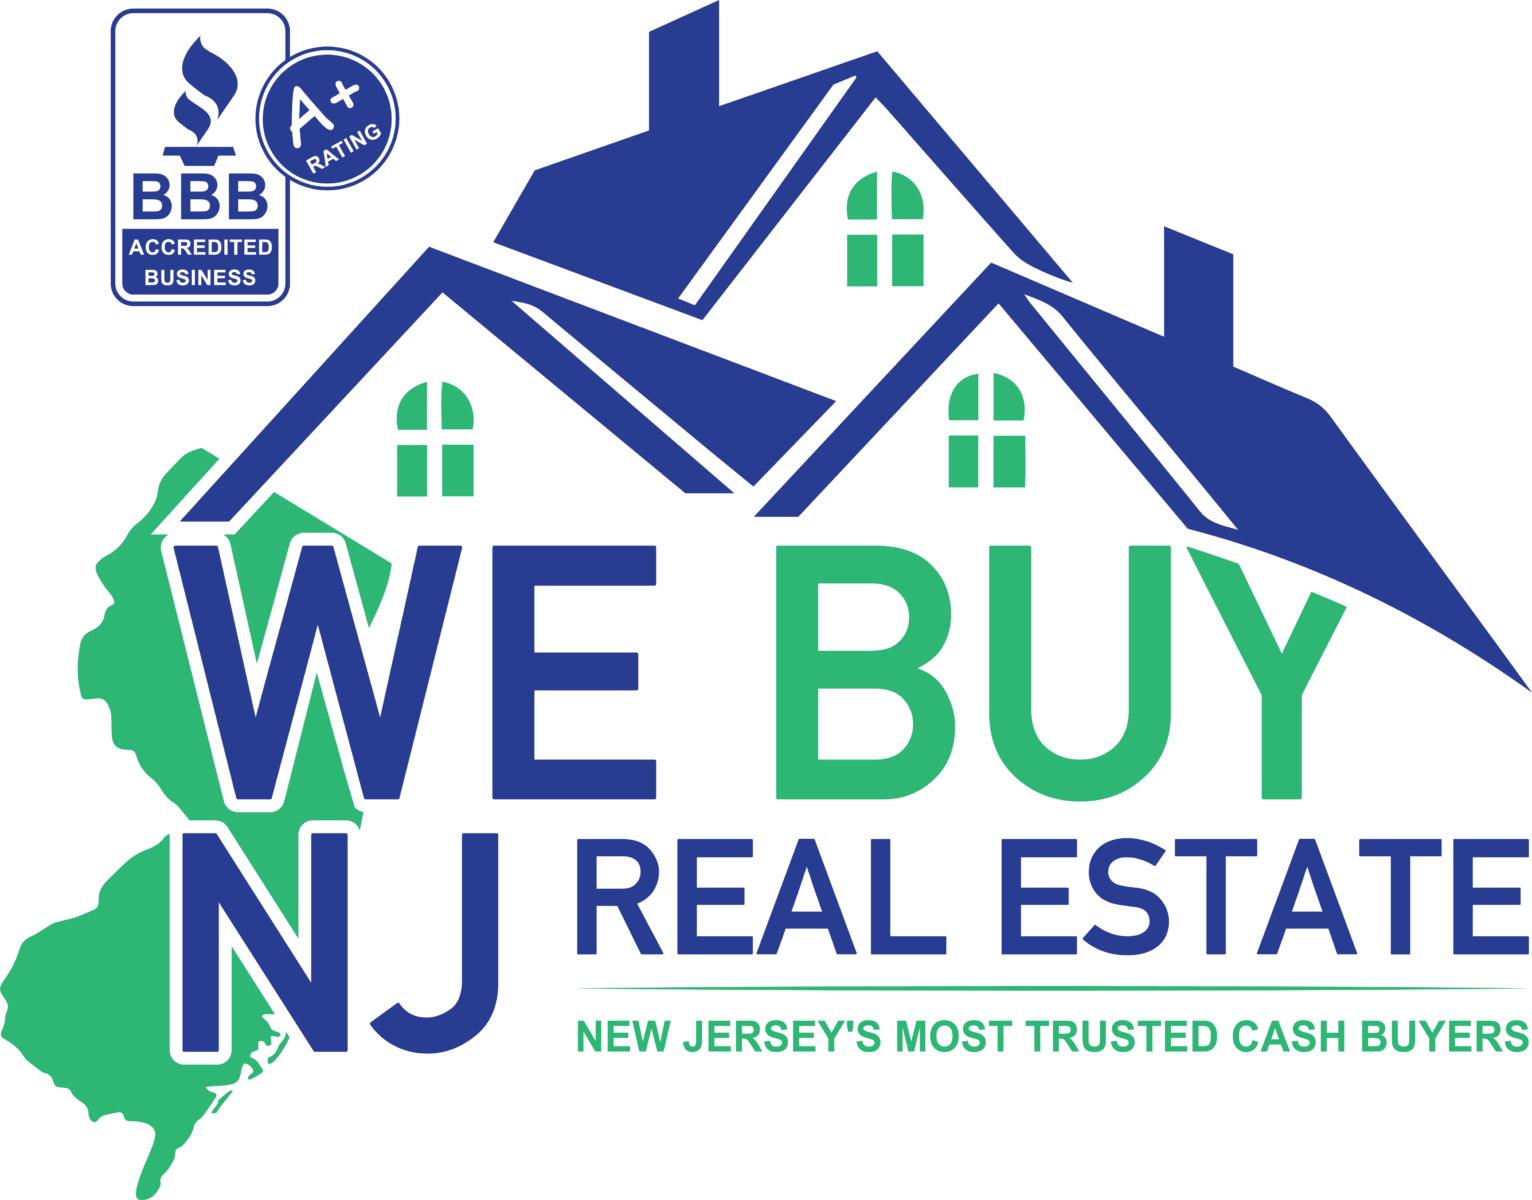 We Buy NJ Real Estate, LLC logo